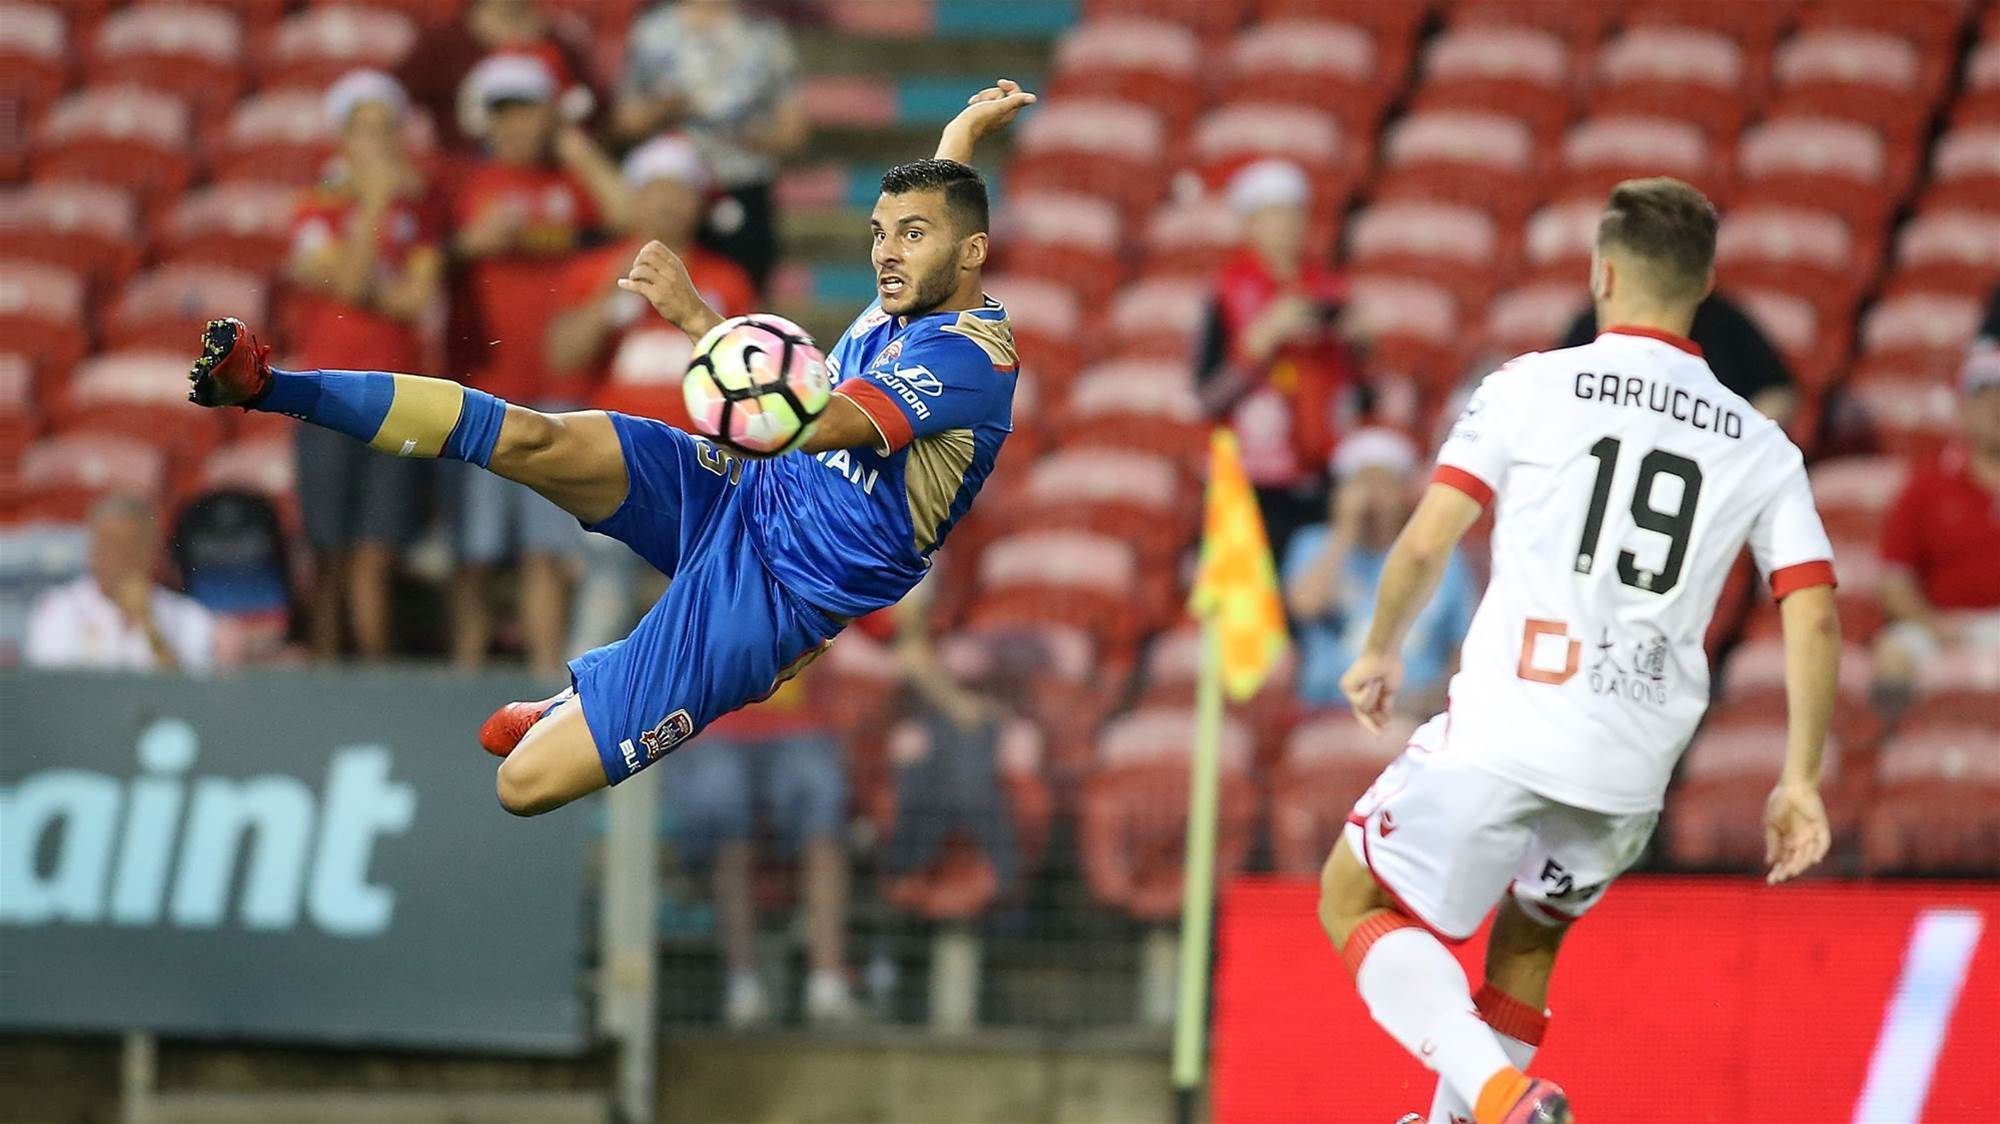 Nabbout: Wide play key to whipping Wanderers